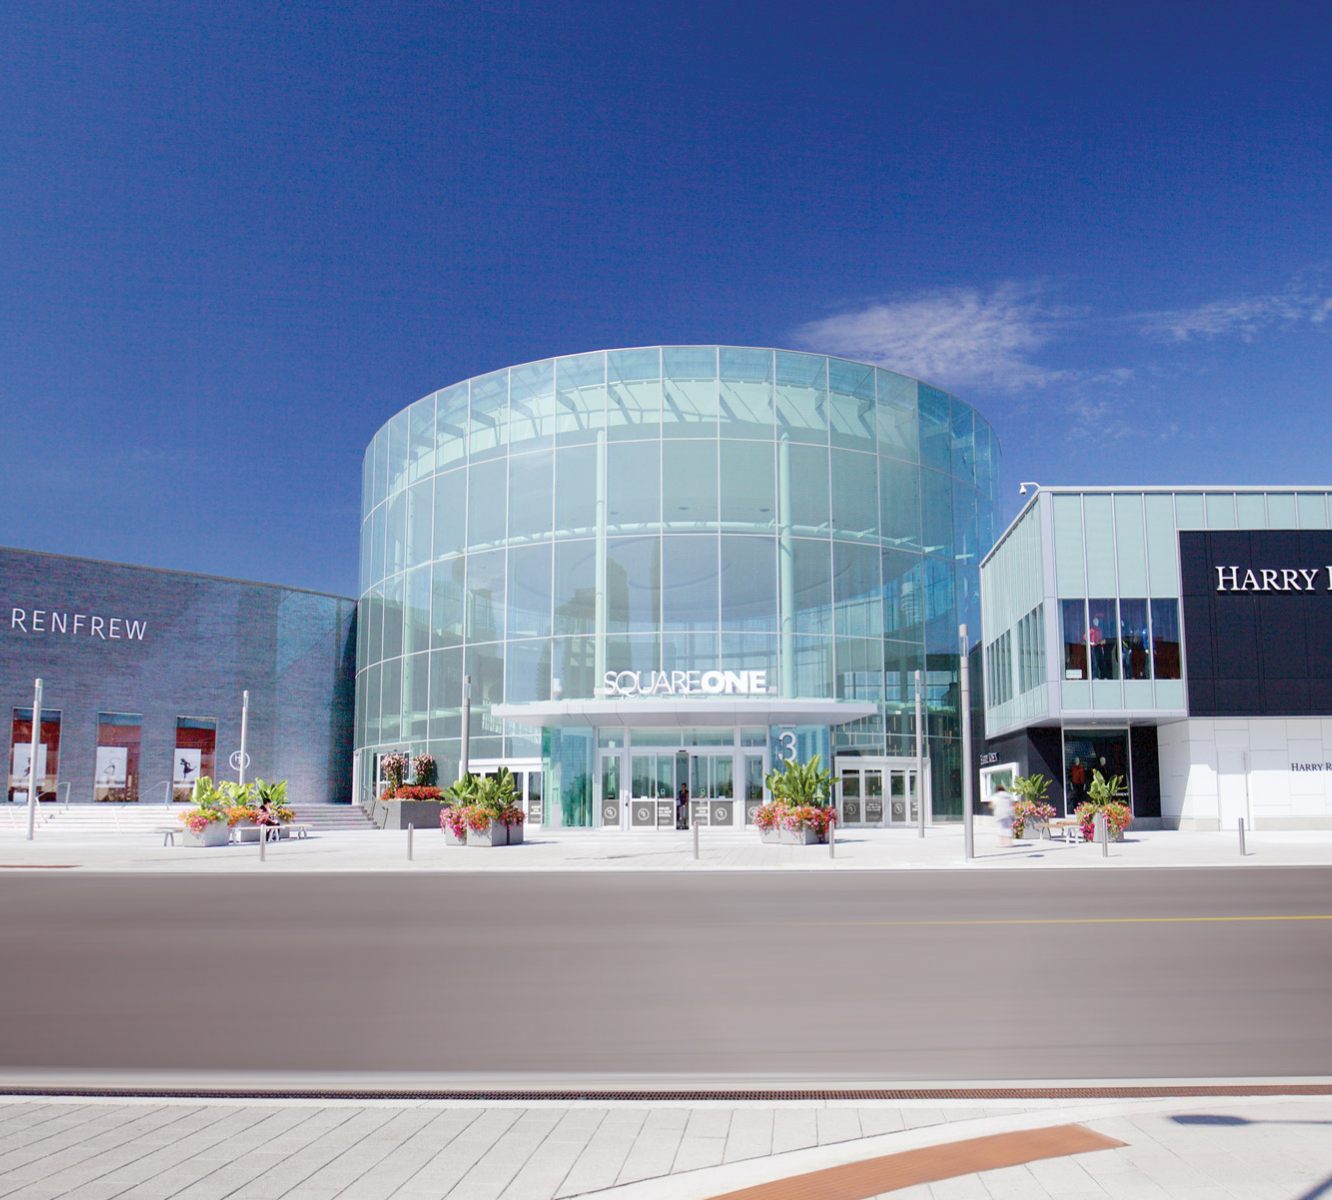 Exterior glass round entrance of Square One shopping centre summer time with bright blue sky.